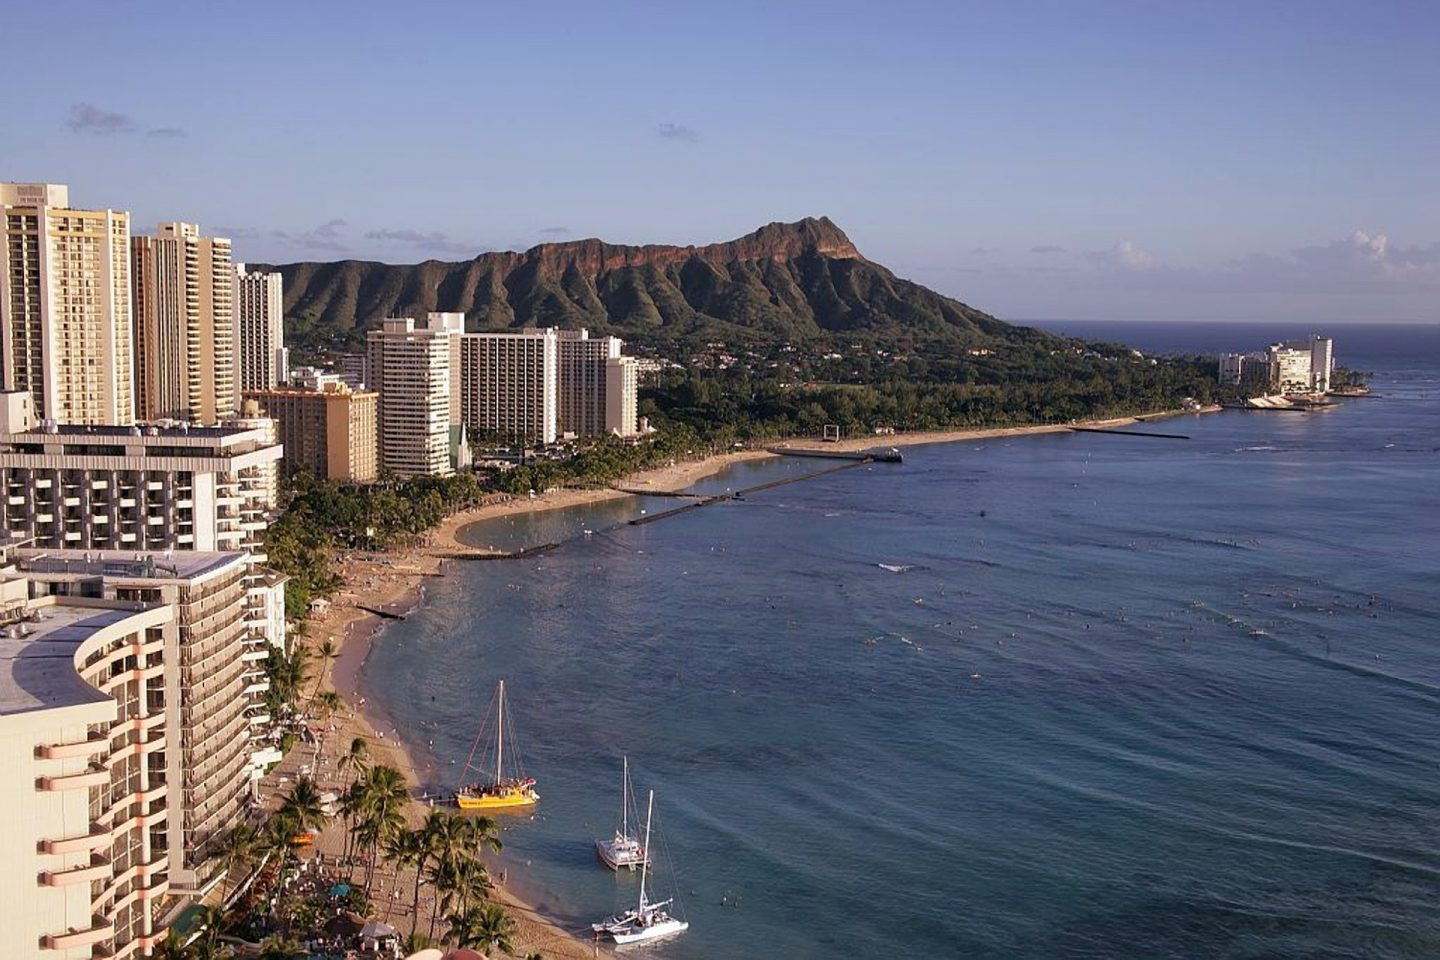 Aerial shot of the coastline of Waikiki with the ocean, Diamond Head, and the hotels.